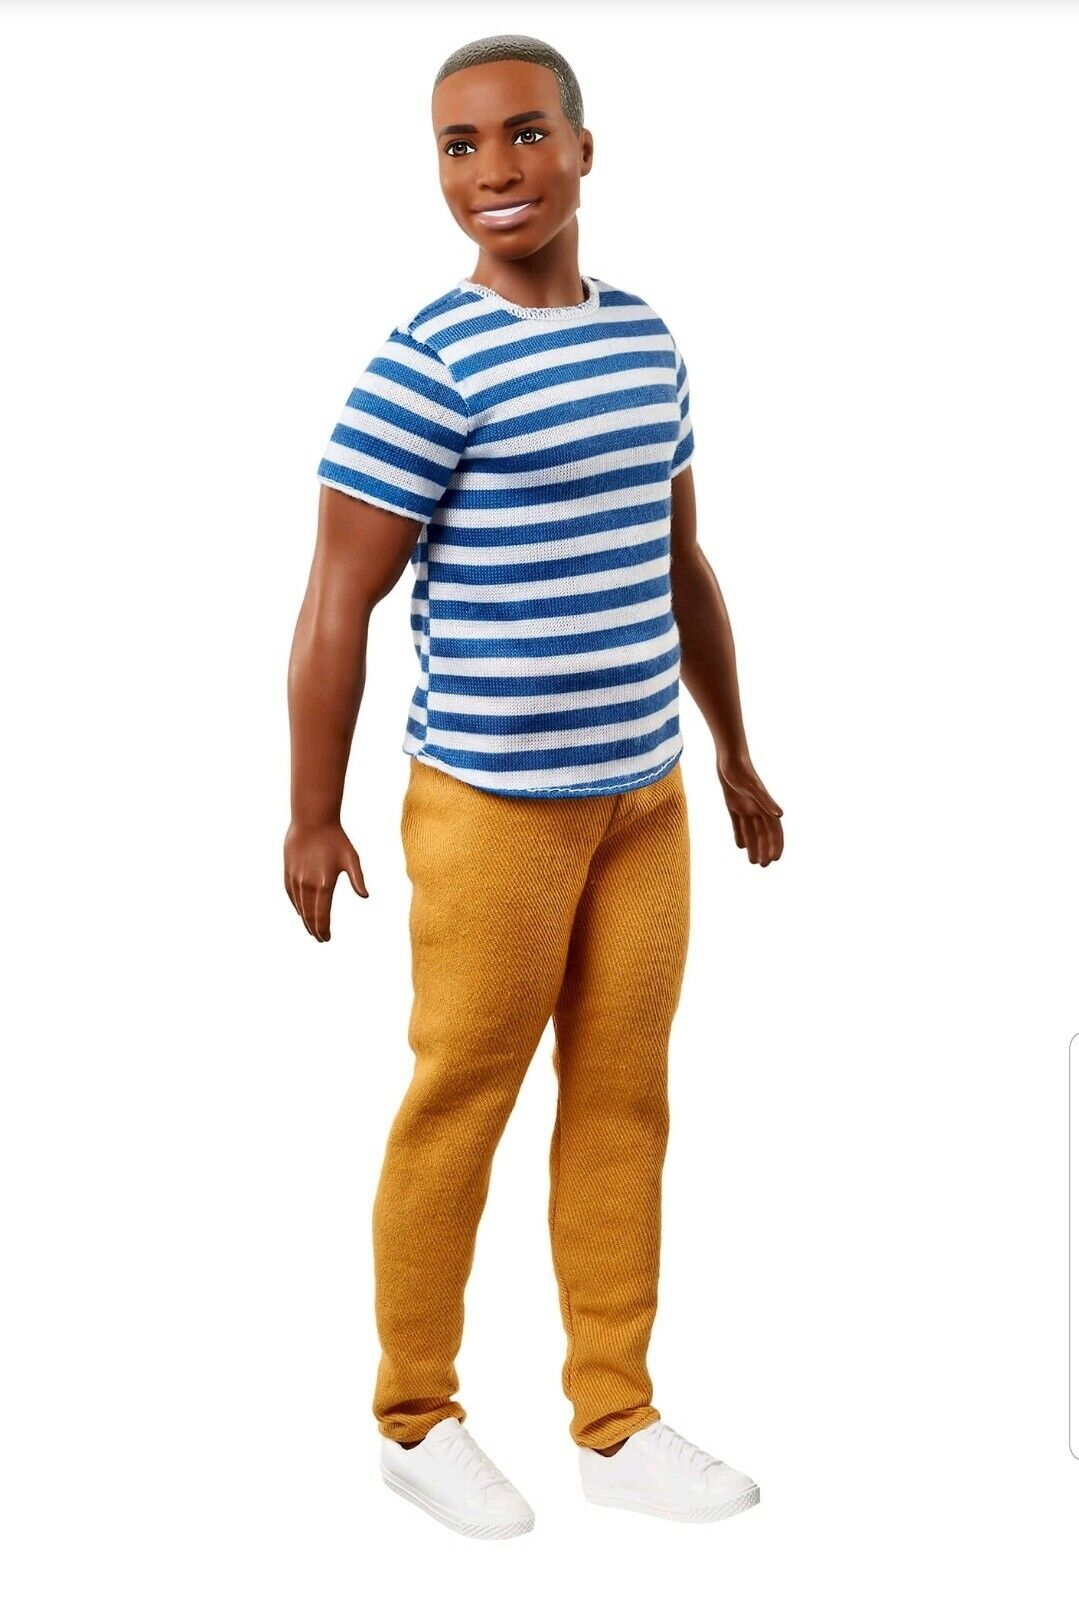 Fashion Outfits//Clothes//Uniform Tops+Pants For 12 inch Ken Doll B41